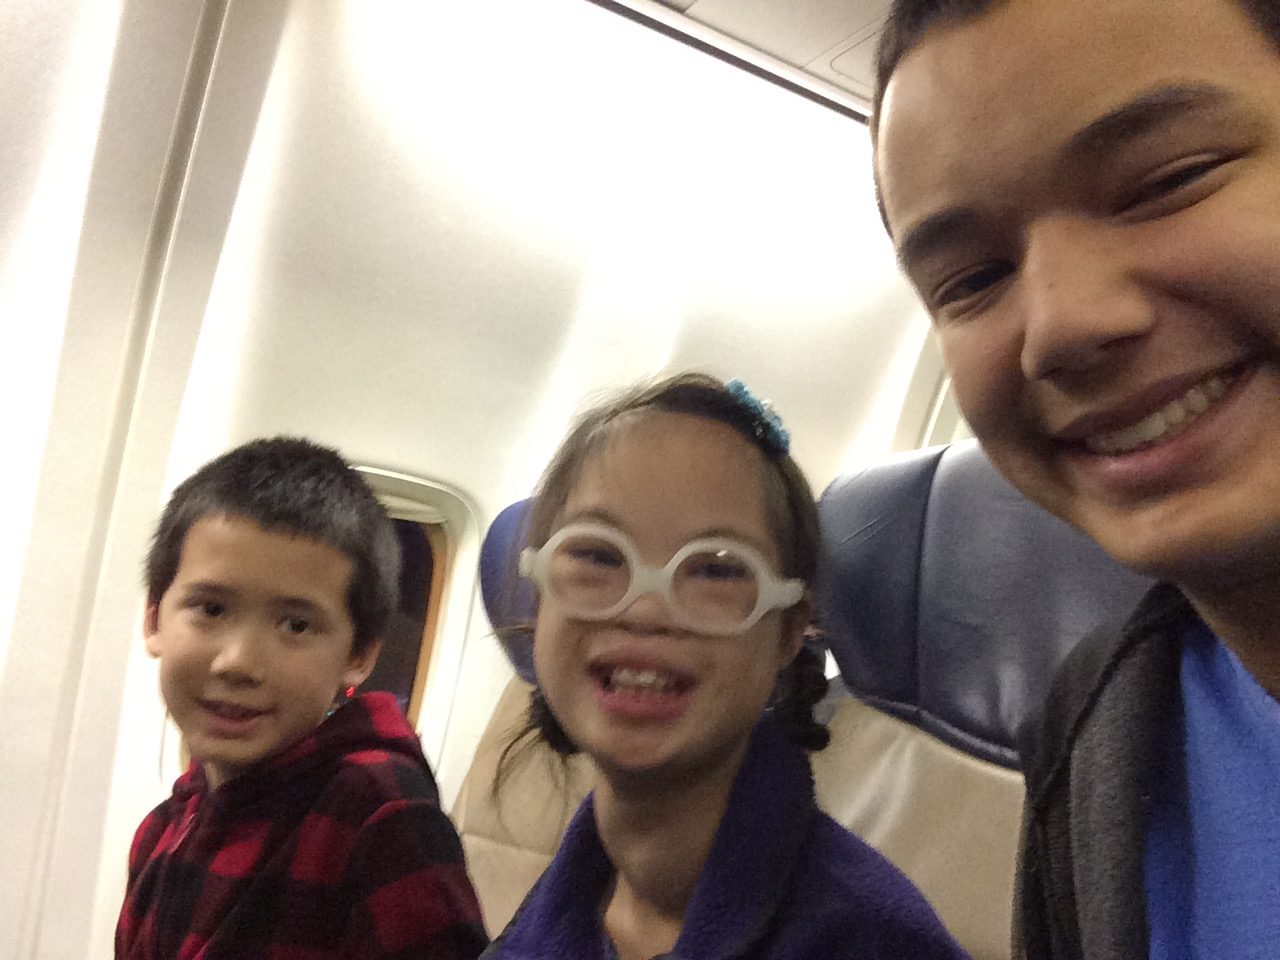 This blurry image means a lot to me: not only was it the first time that the three of them traveled alone on an airplane, this was the longest trip Anah had taken apart from us. I would never have imagined that she (or we!) could handle a trip like this. To God be the glory!